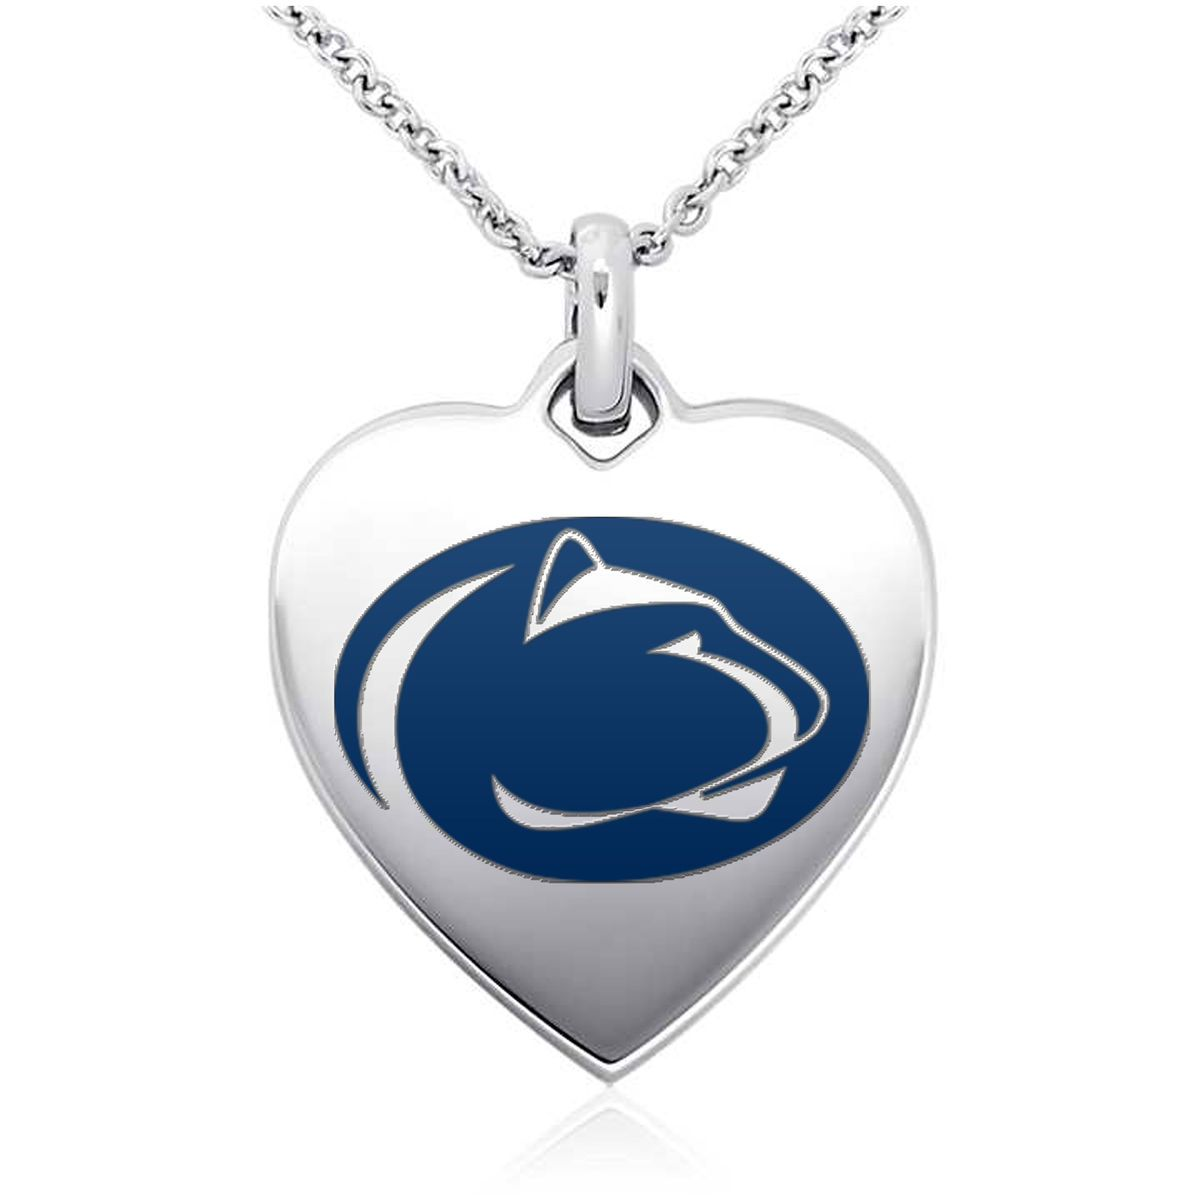 """Penn State Nittany Lions Women's 18"""" Sterling Silver Necklace with 1"""" Heart Pendant - $51.99"""